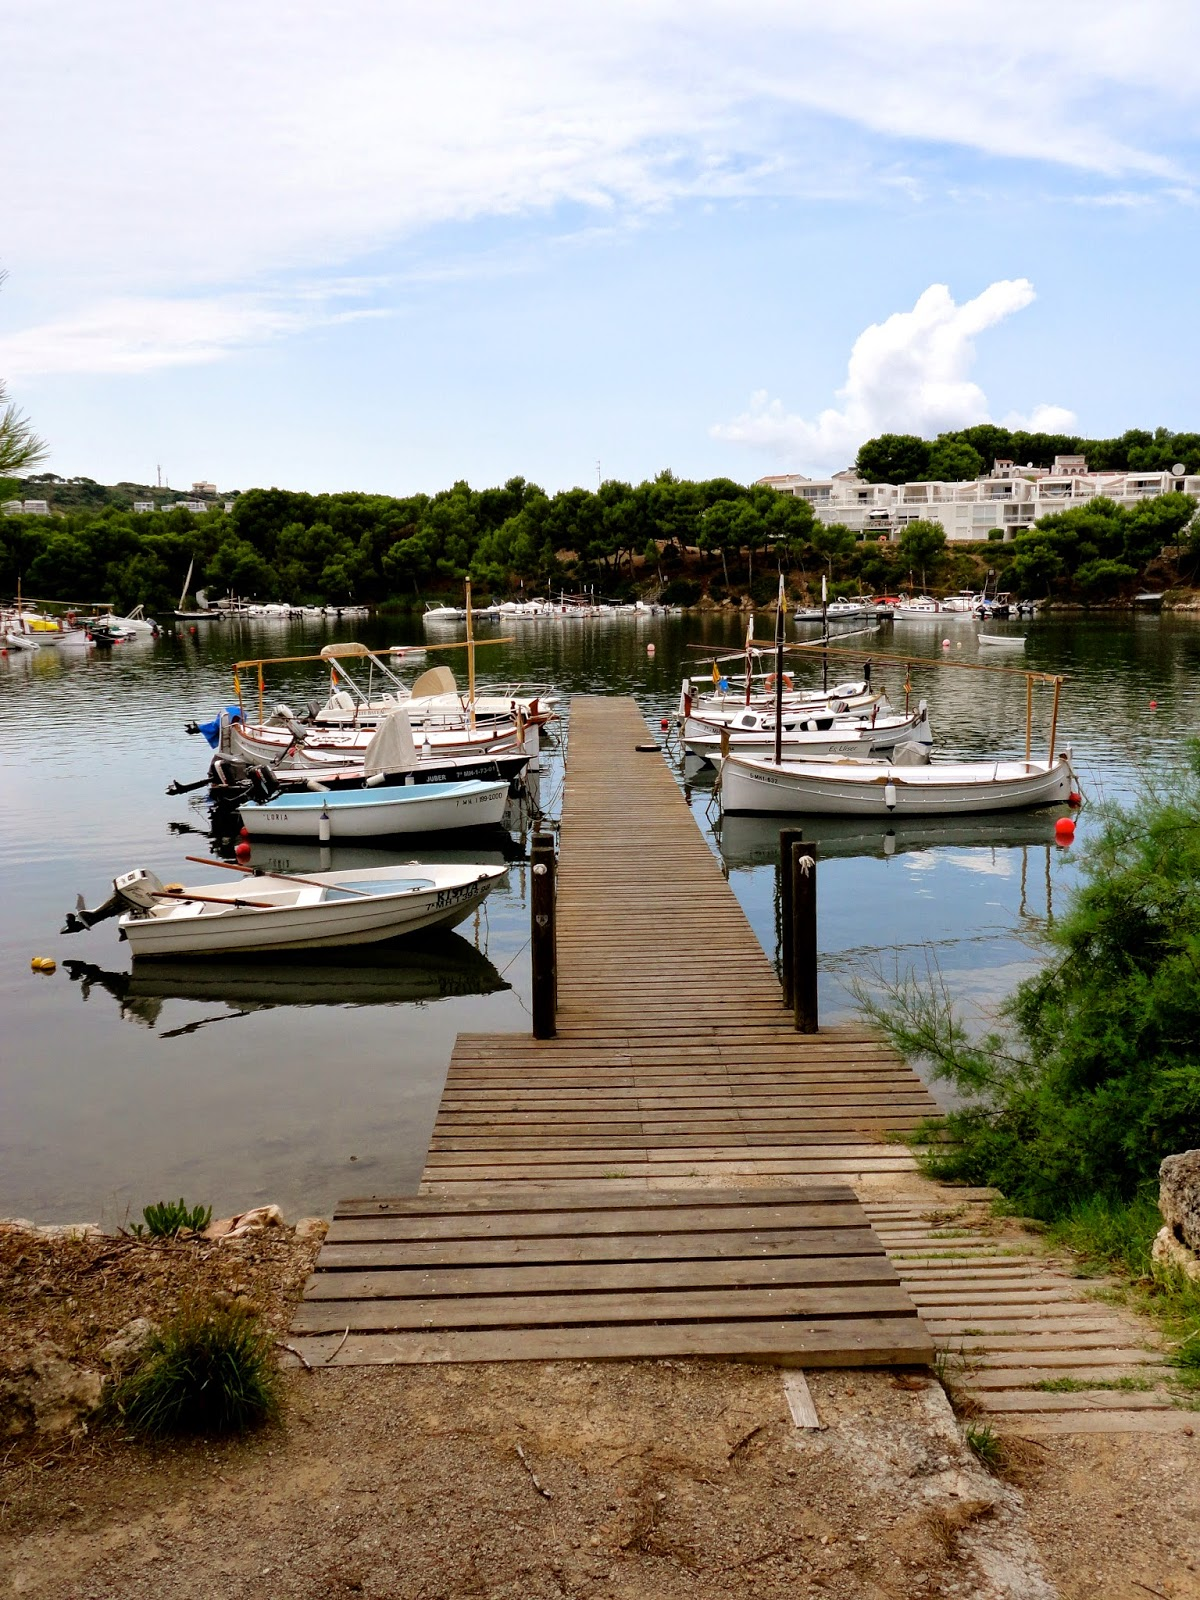 Travel Inspiration | Menorca, Spain | wooden jetty with small boats in harbour